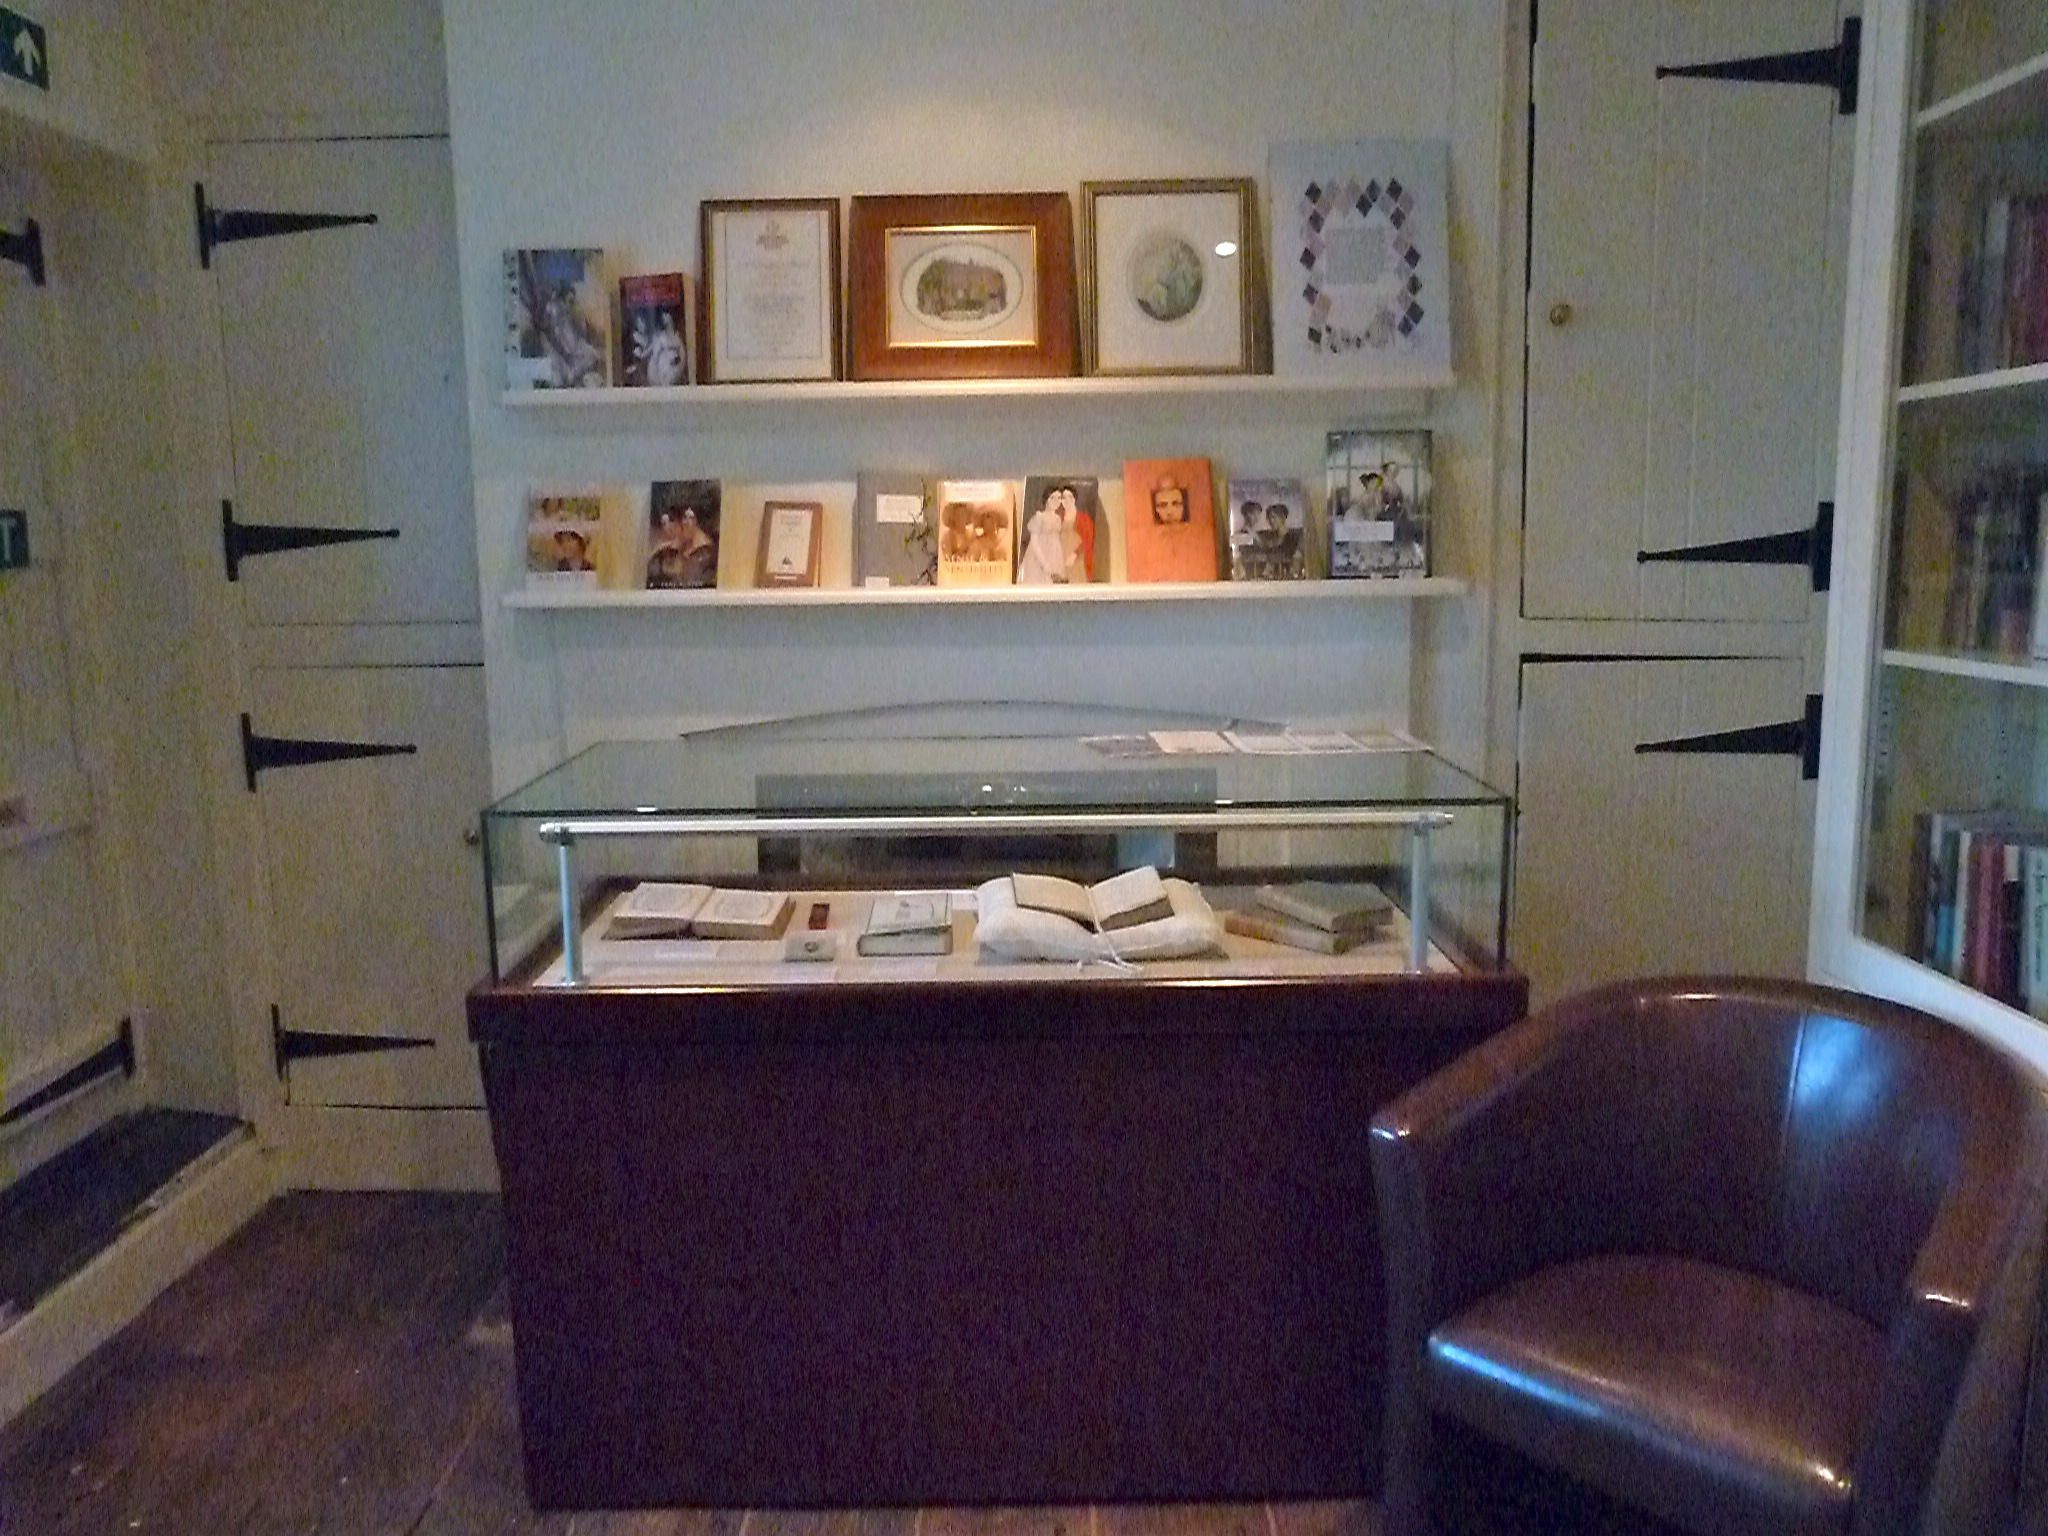 The Sense And Sensibility Exhibit In Reading Room